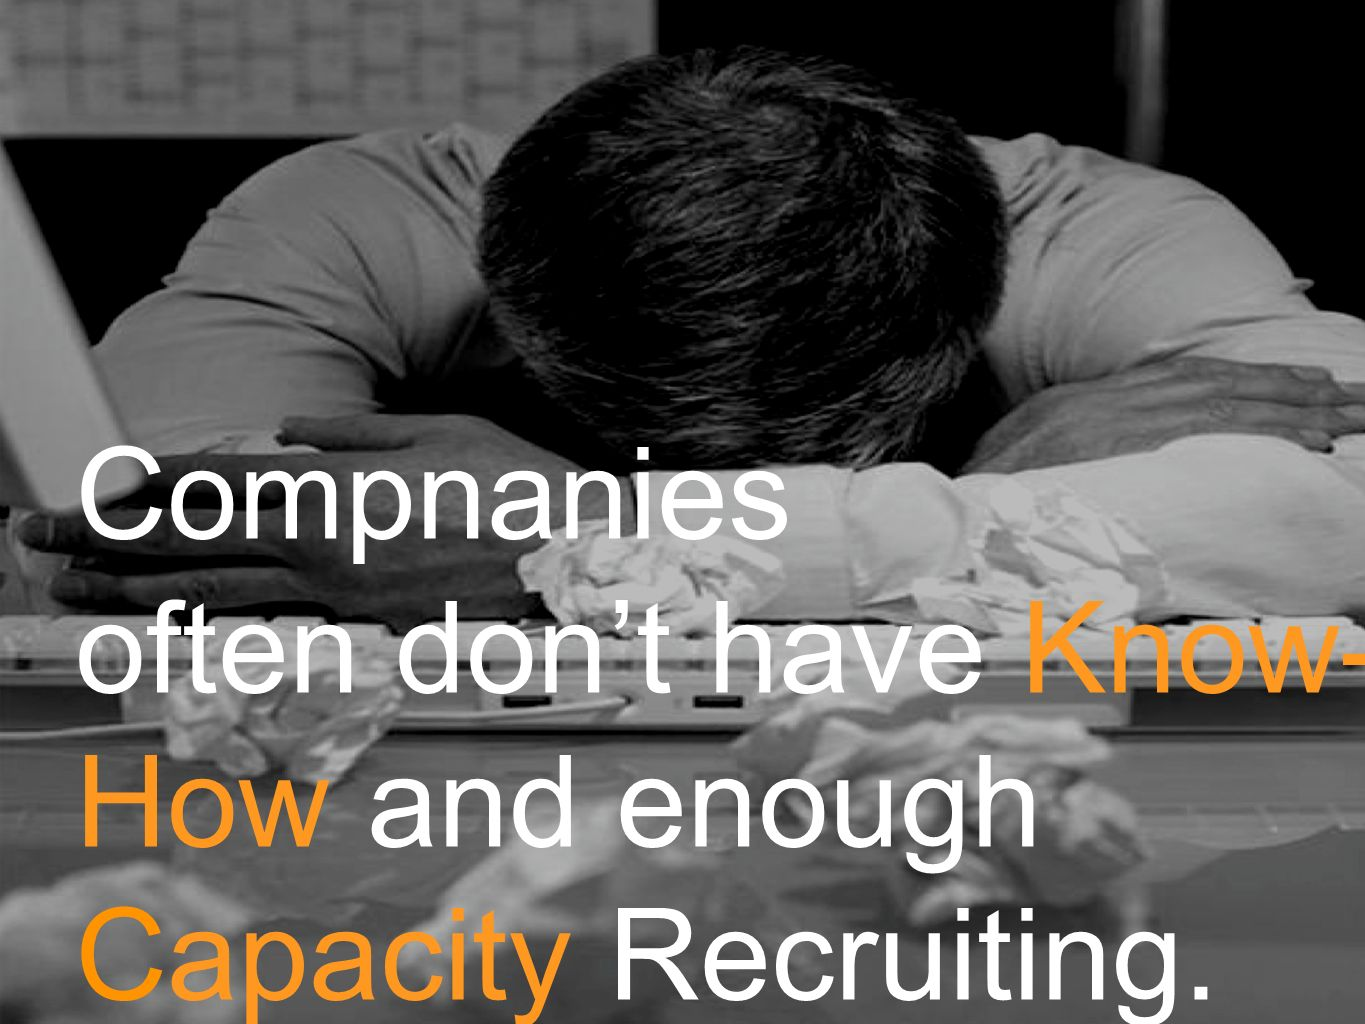 Compnanies often don't have Know- How and enough Capacity Recruiting.